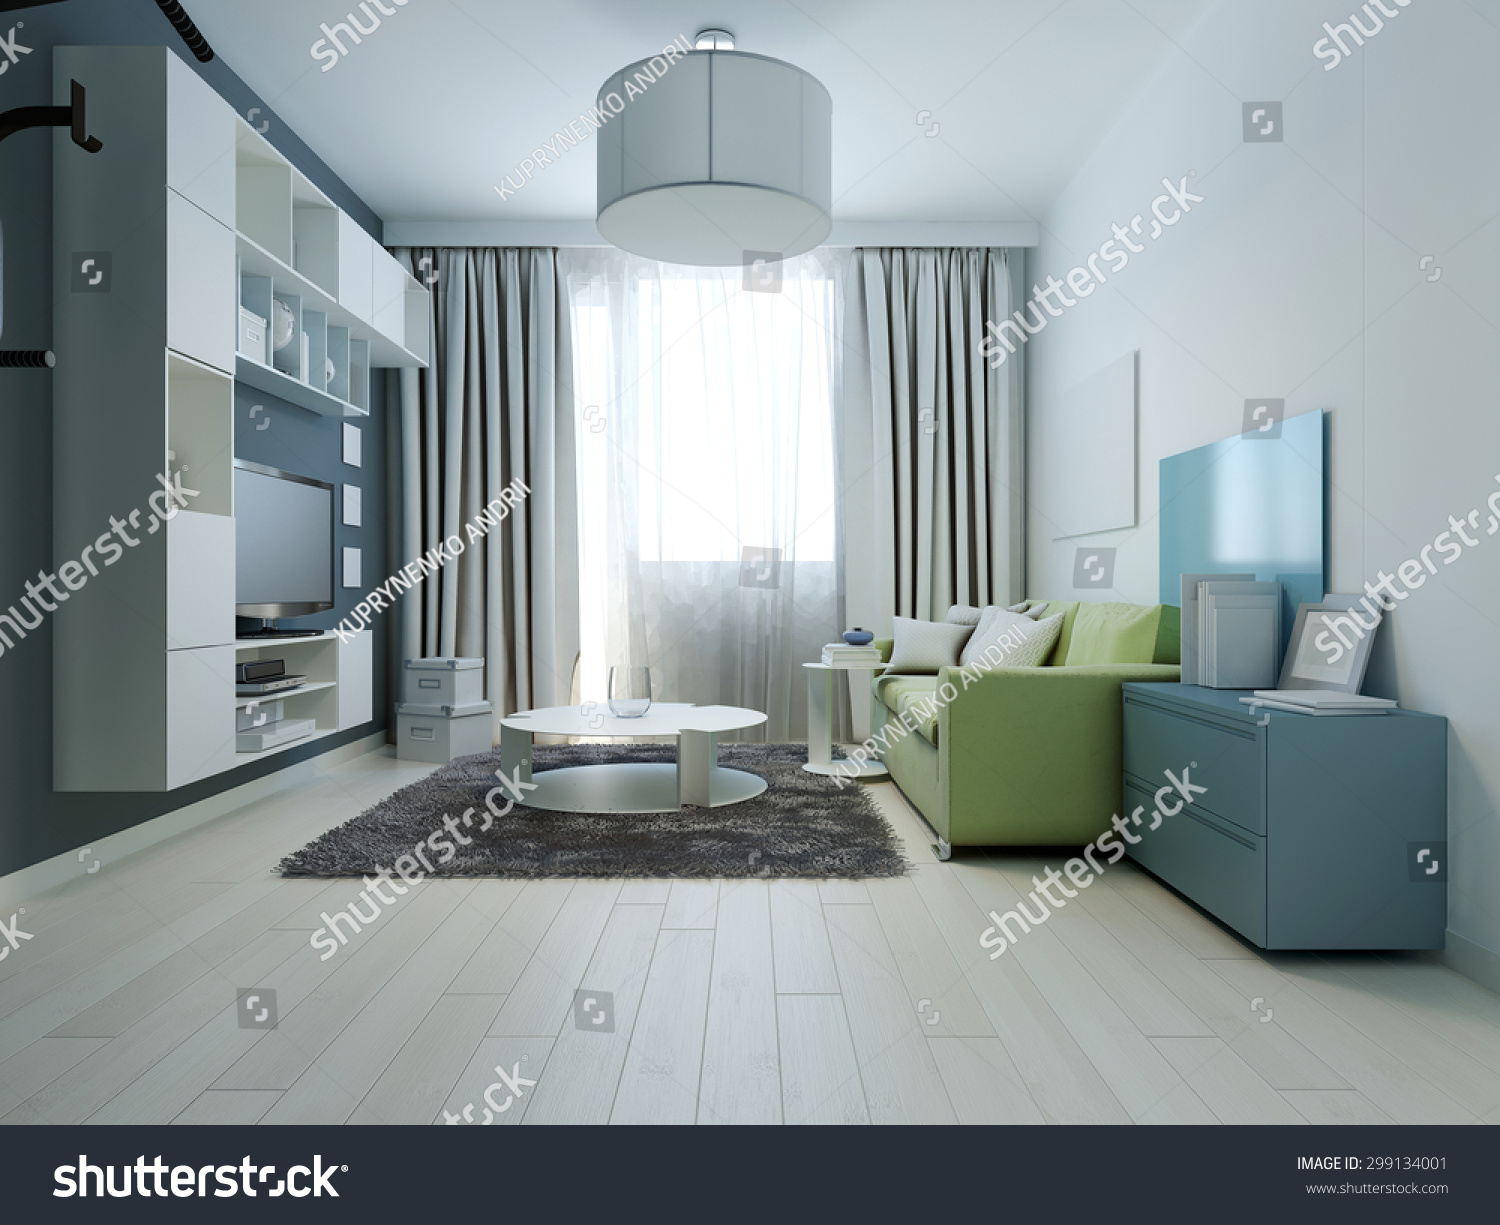 kitschy living room designs with french windows design bright colored kitsch stock illustration of style wall furniture parquet made